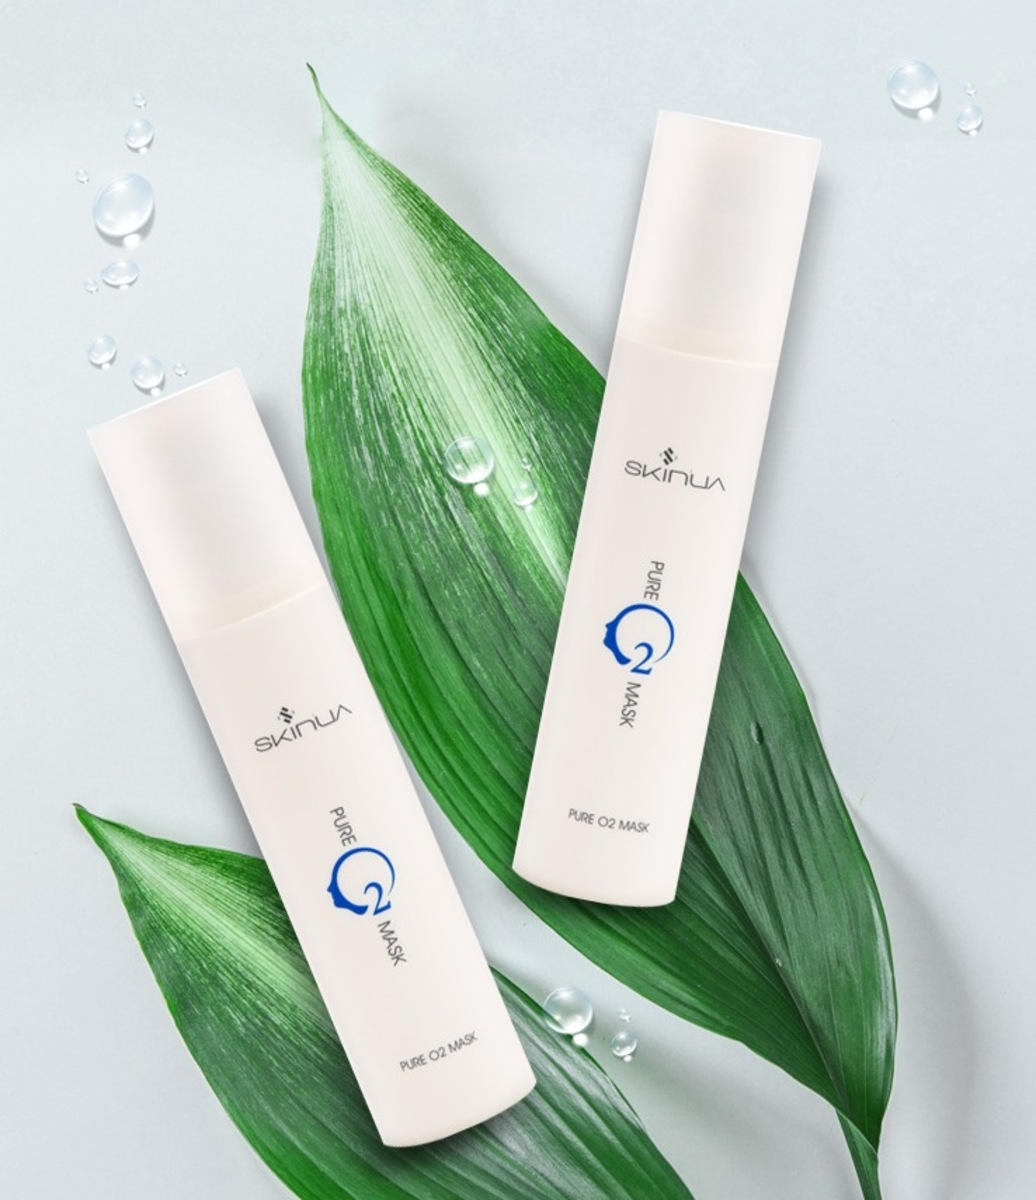 SKINUA PURE O2 MASK